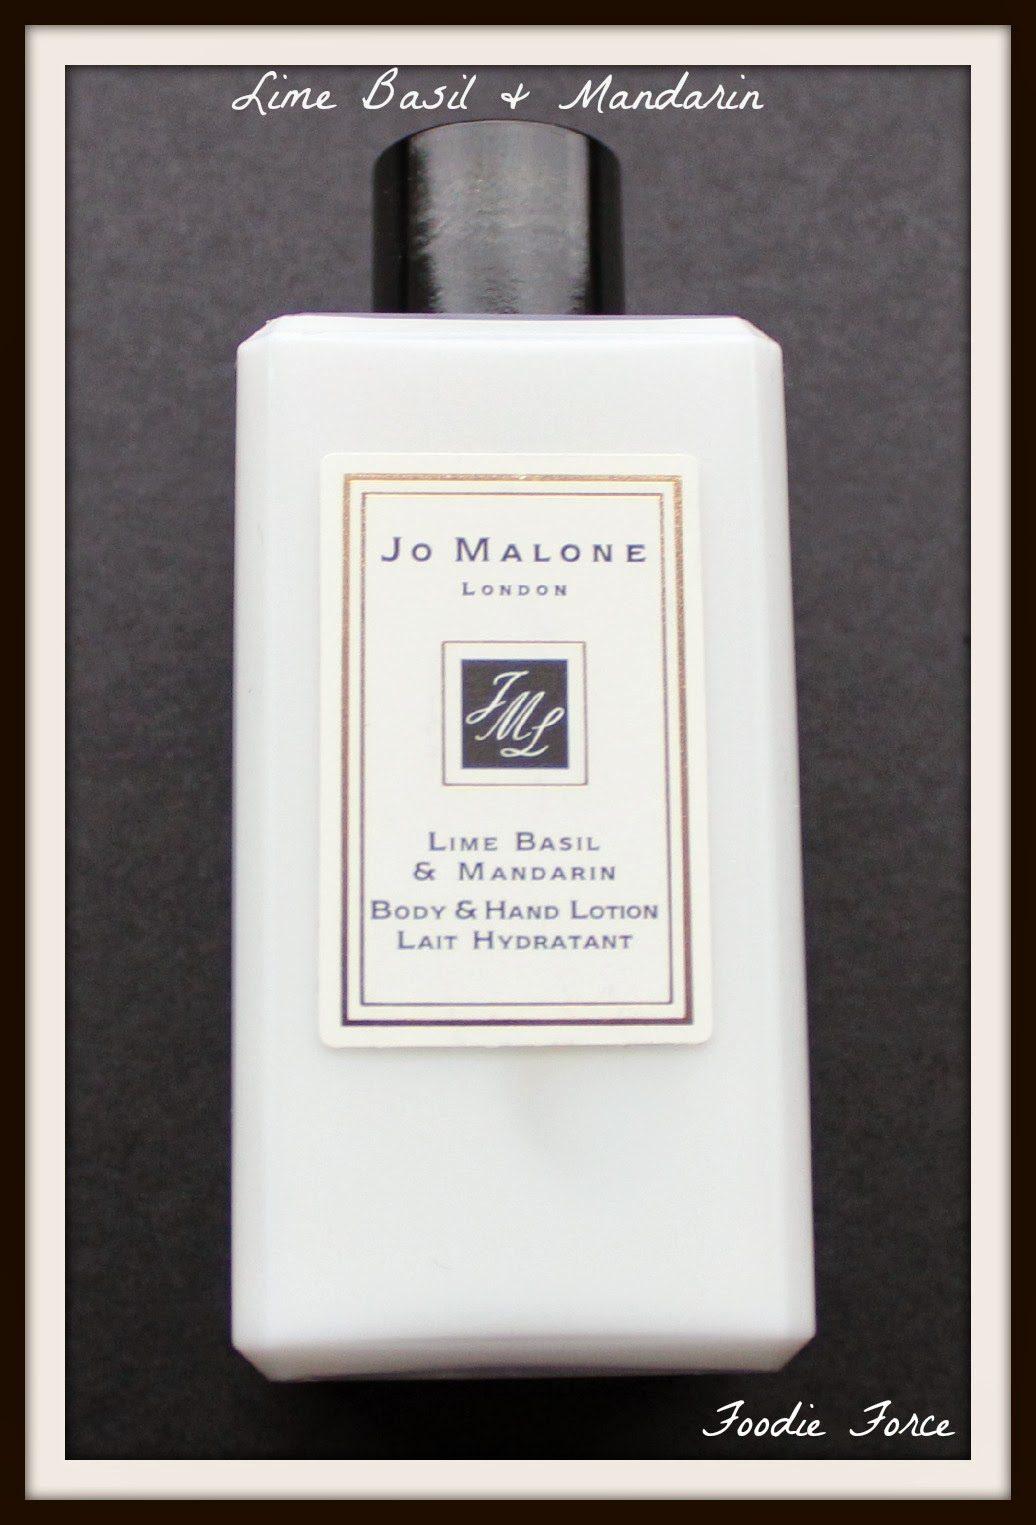 Jo Malone body lotion